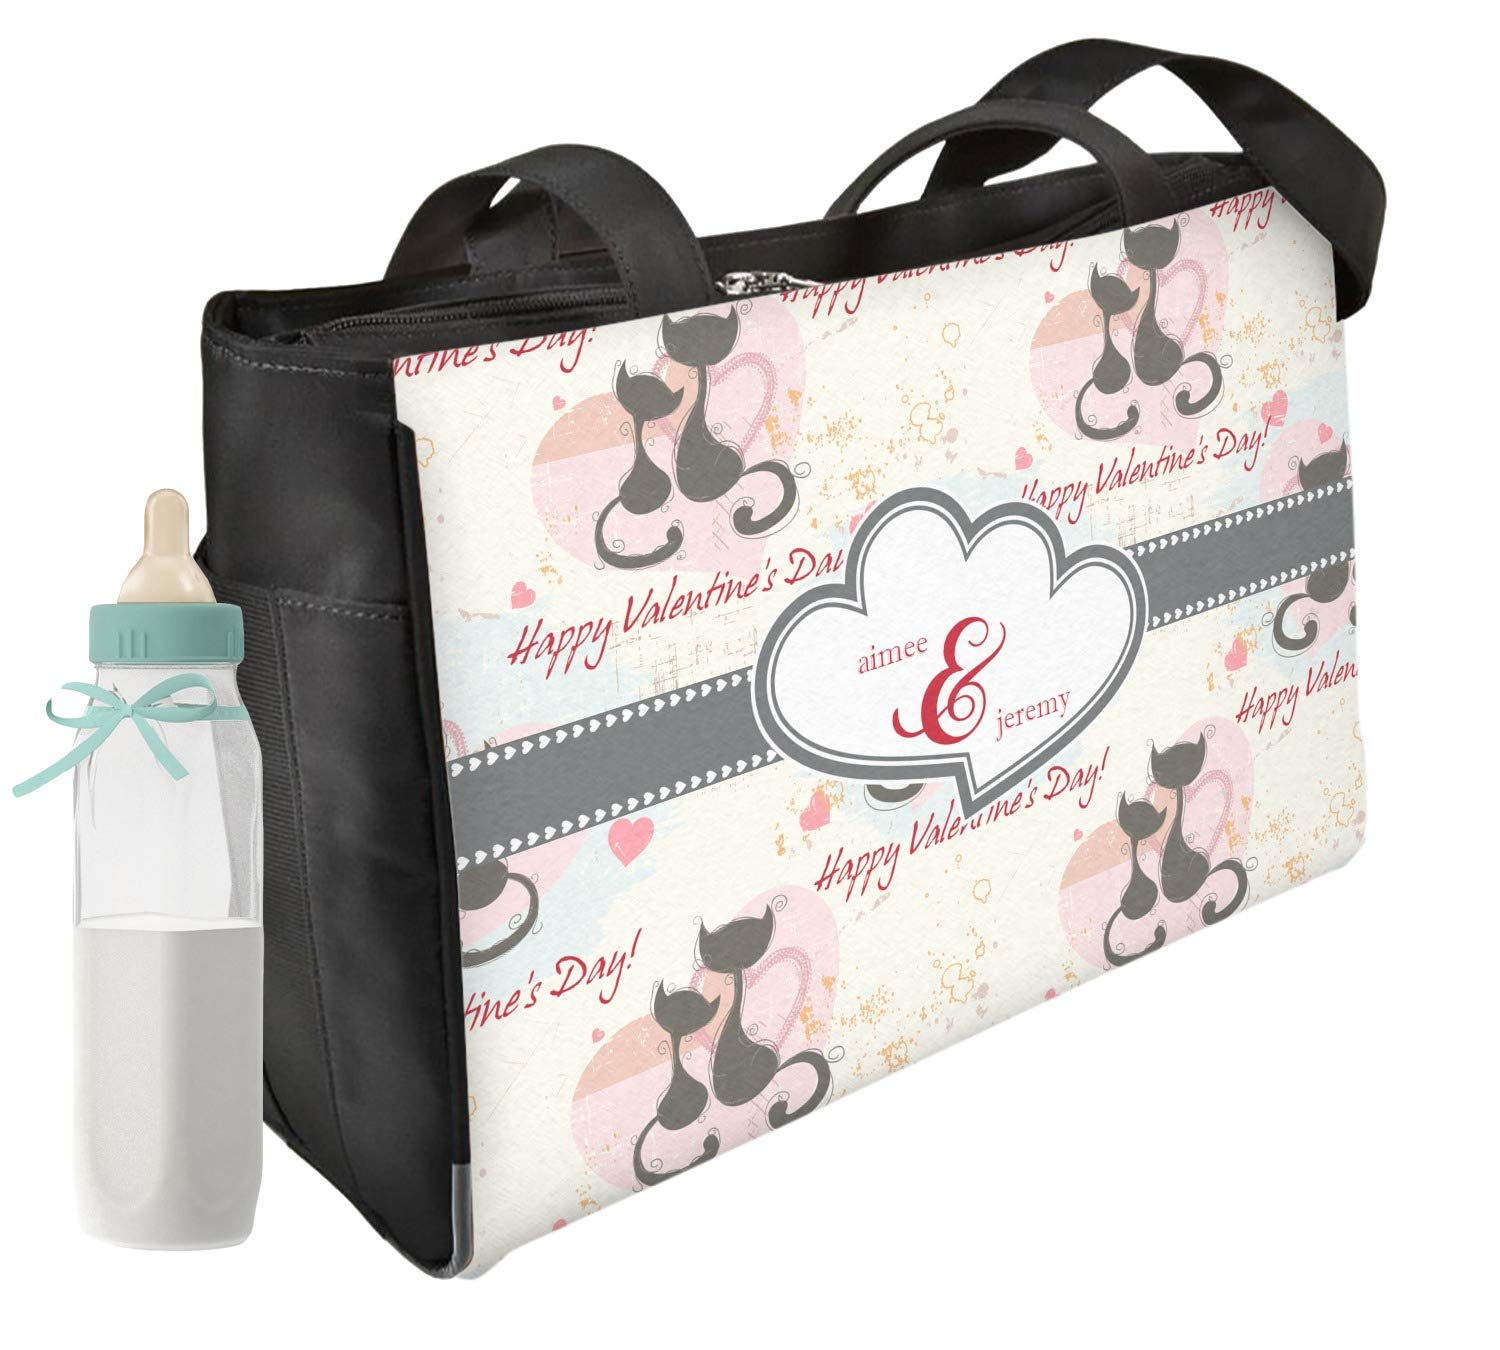 Cats in Love Diaper Bag - Front & Back (Personalized)